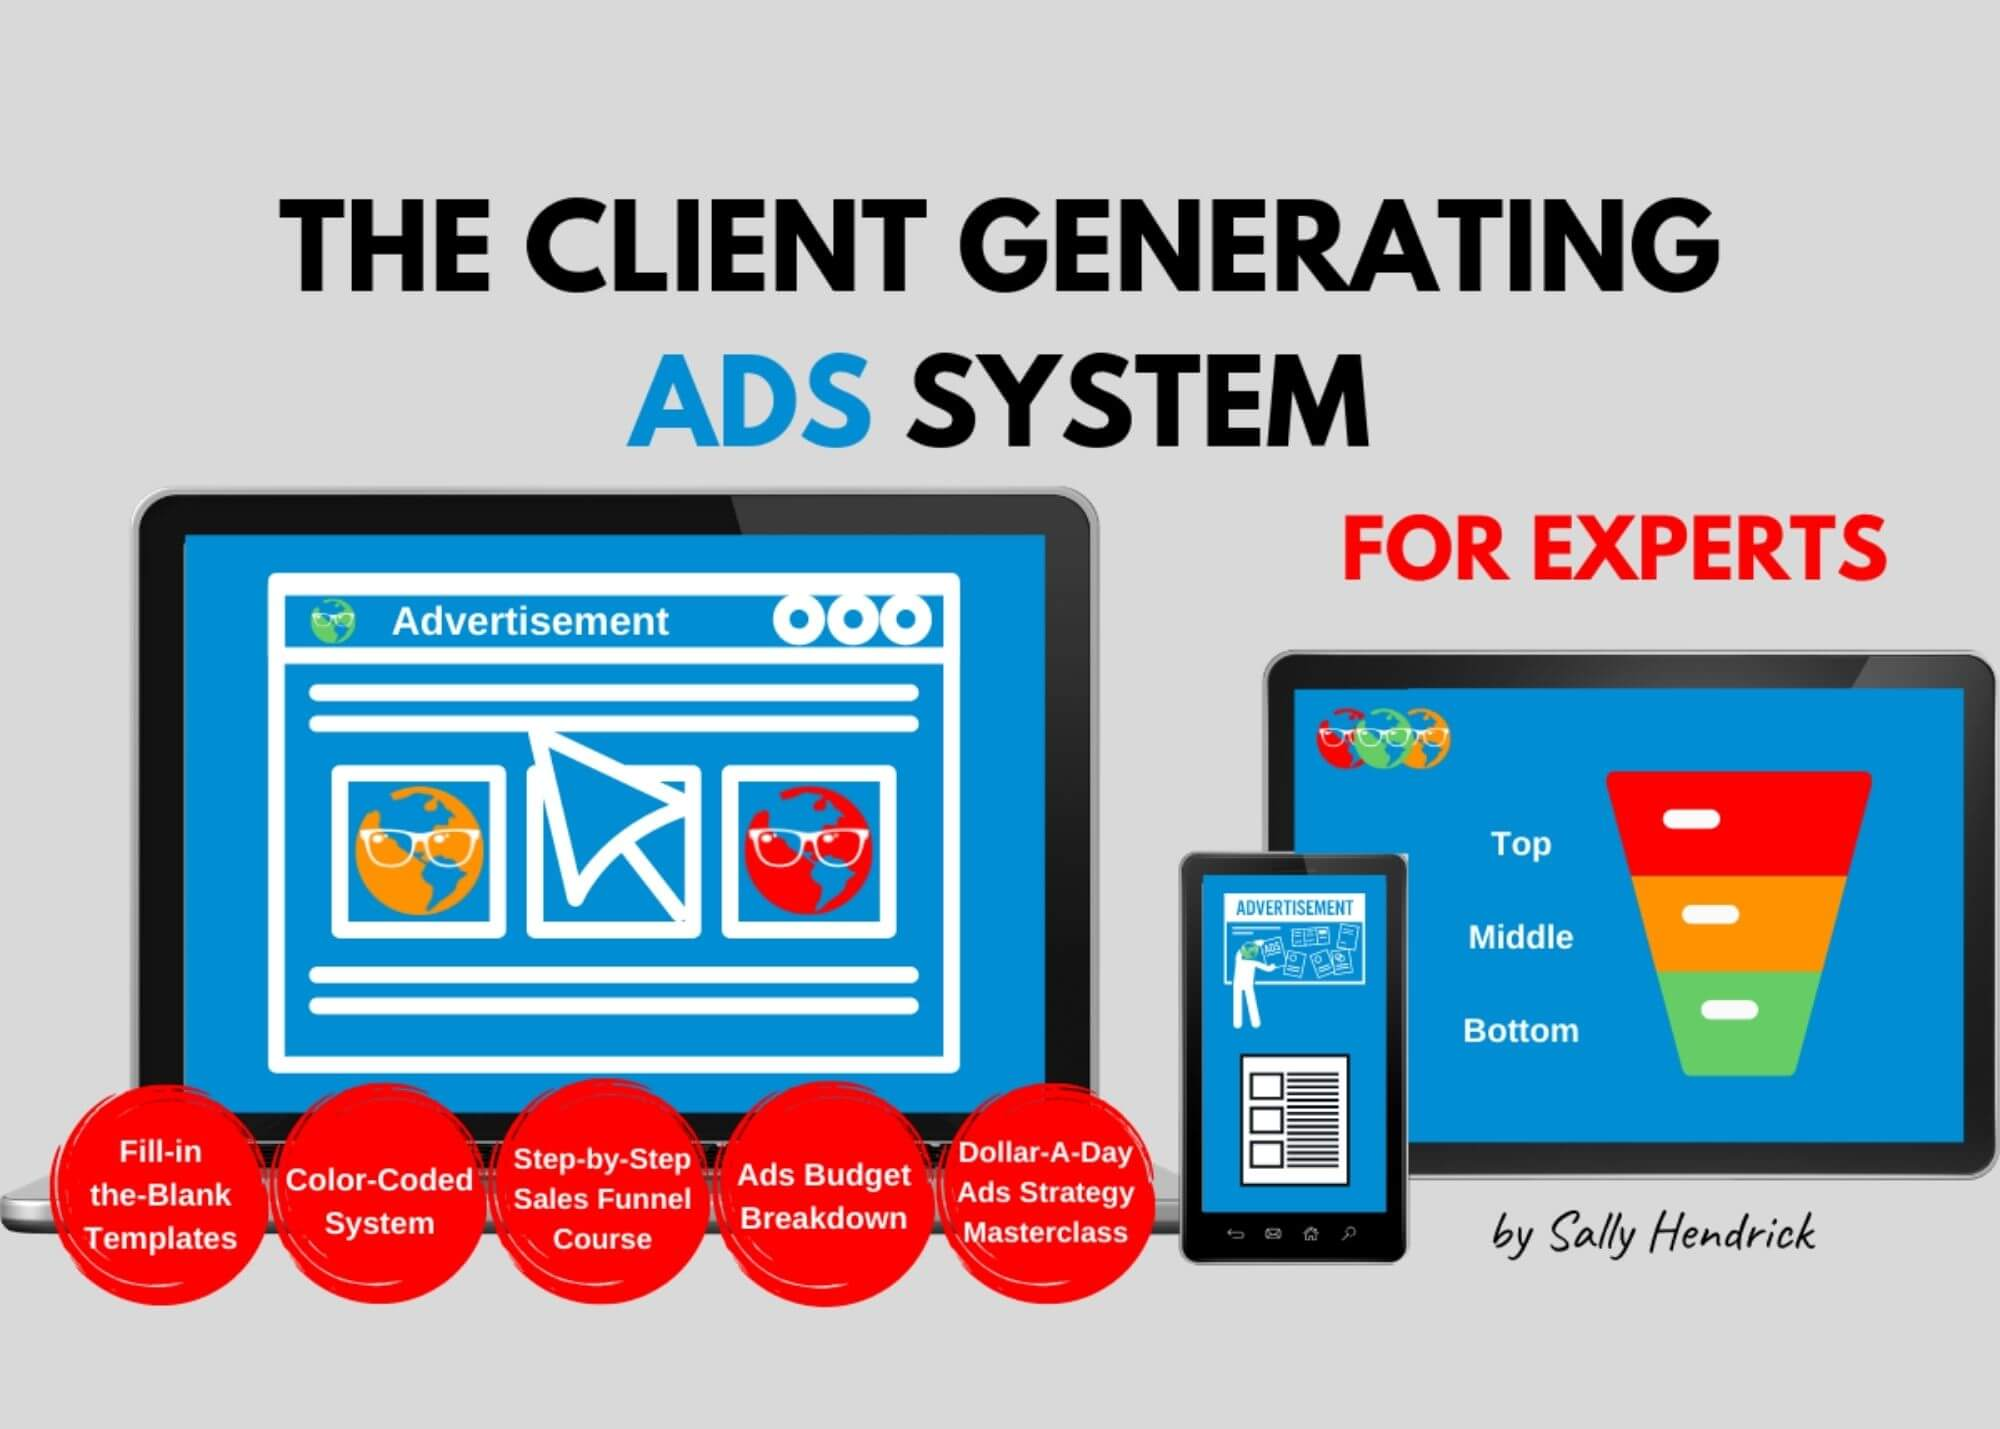 client generating ads system for experts sally hendrick